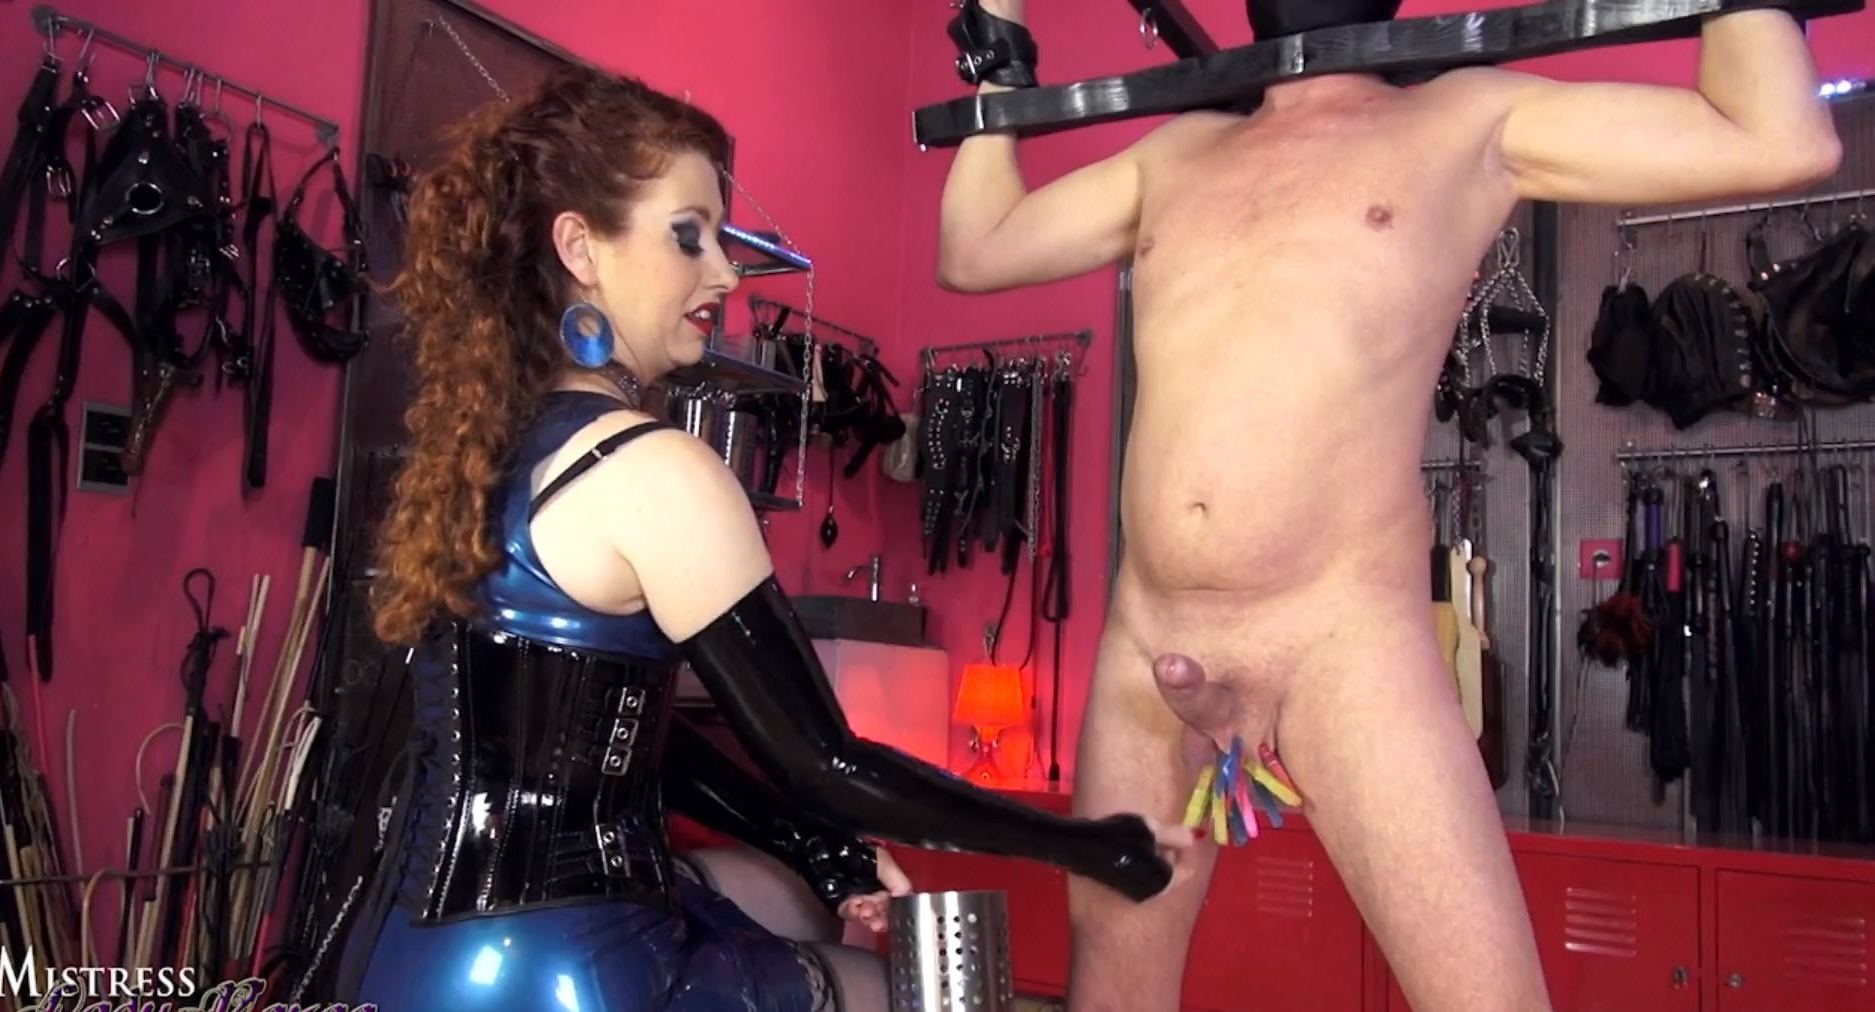 Mistress Lady Renee In Scene: Stretching Balls - MISTRESSLADYRENEE - FULL HD/1080p/MP4